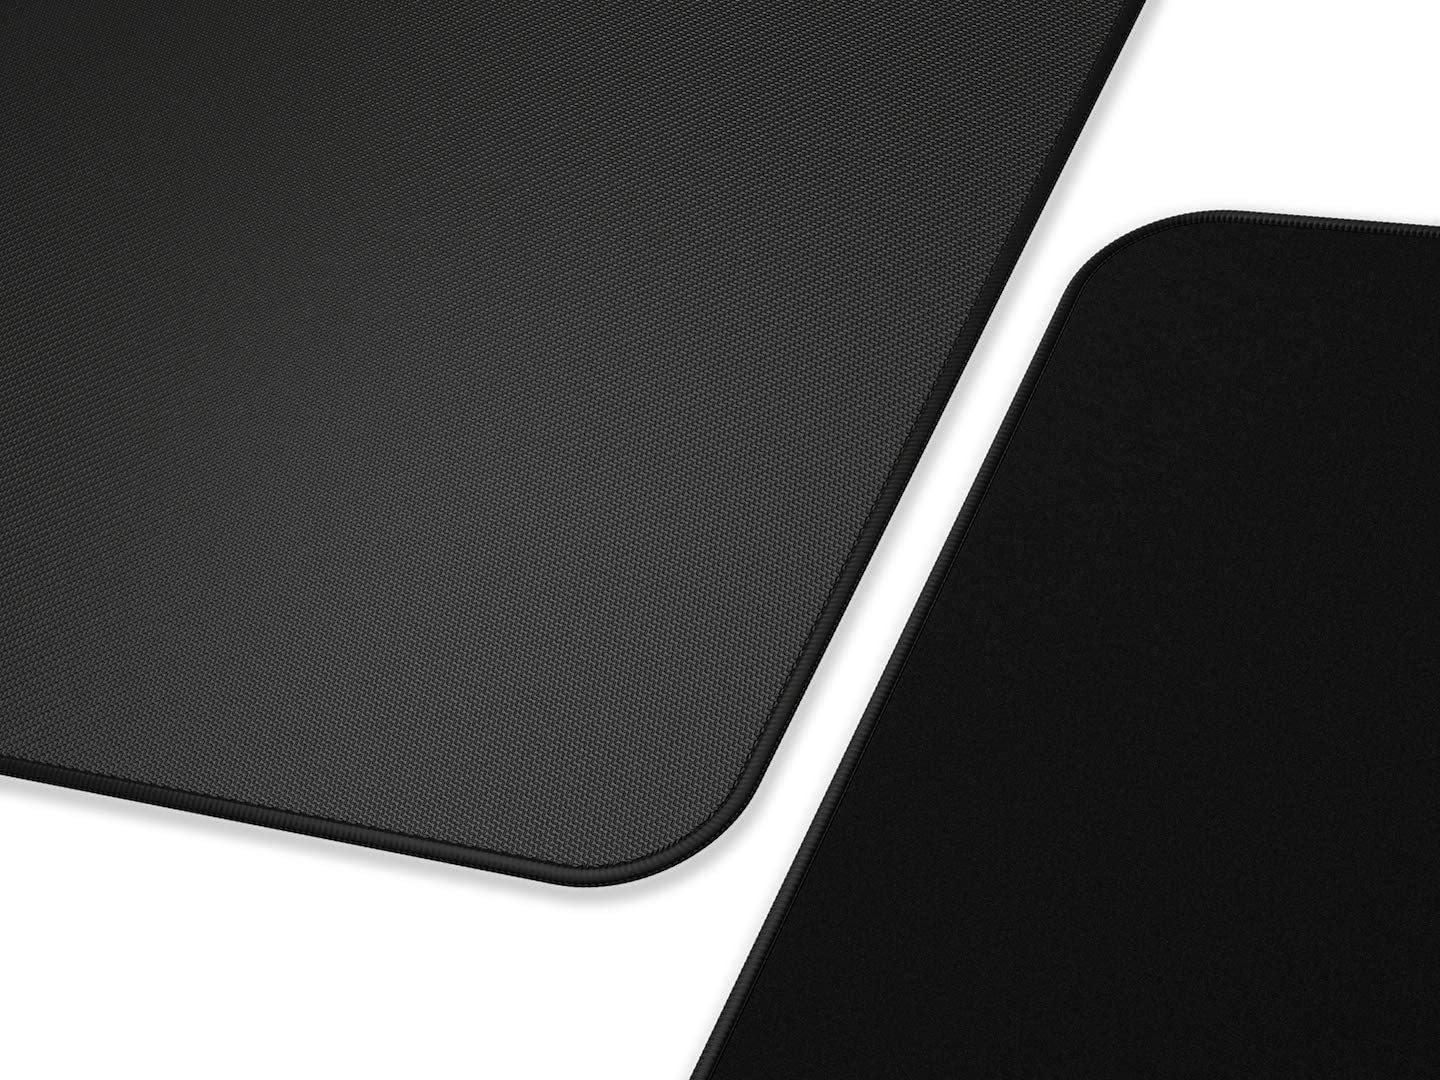 Glorious Large Extended Gaming Mouse Pad/Mat - Stealth Edition - Long Black Cloth Mousepad